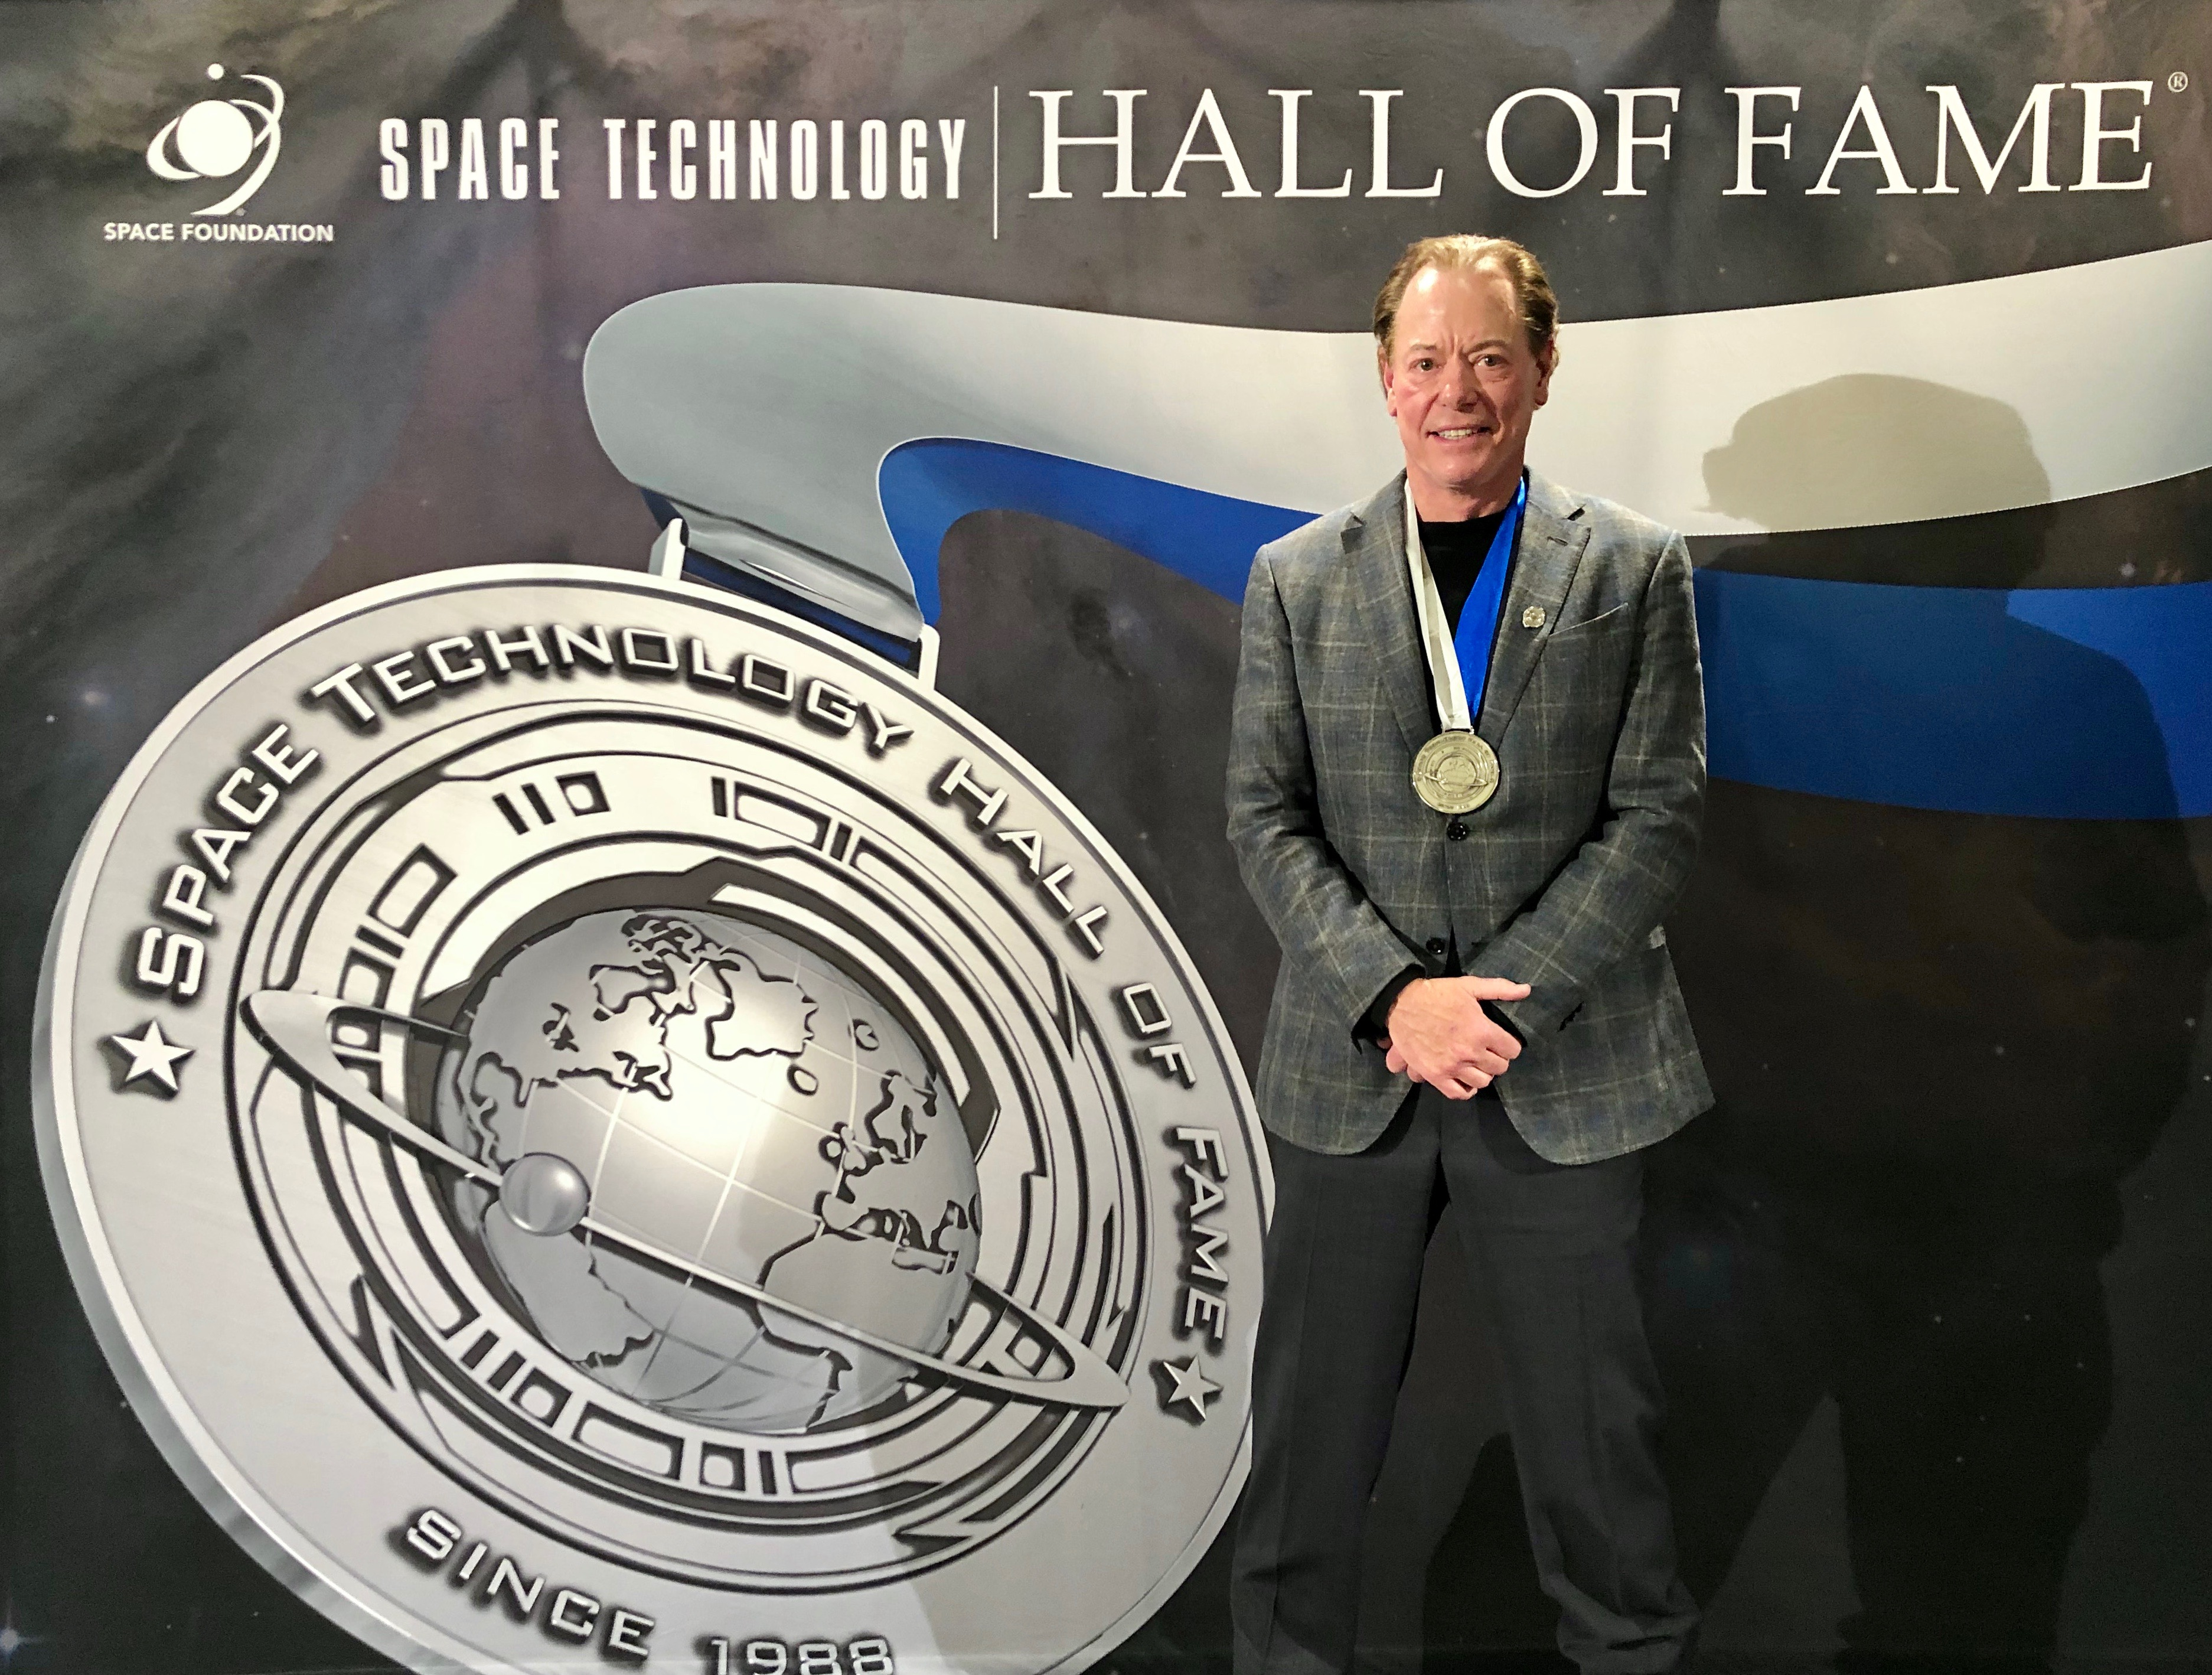 Paul Francis Space Technology Hall of Fame